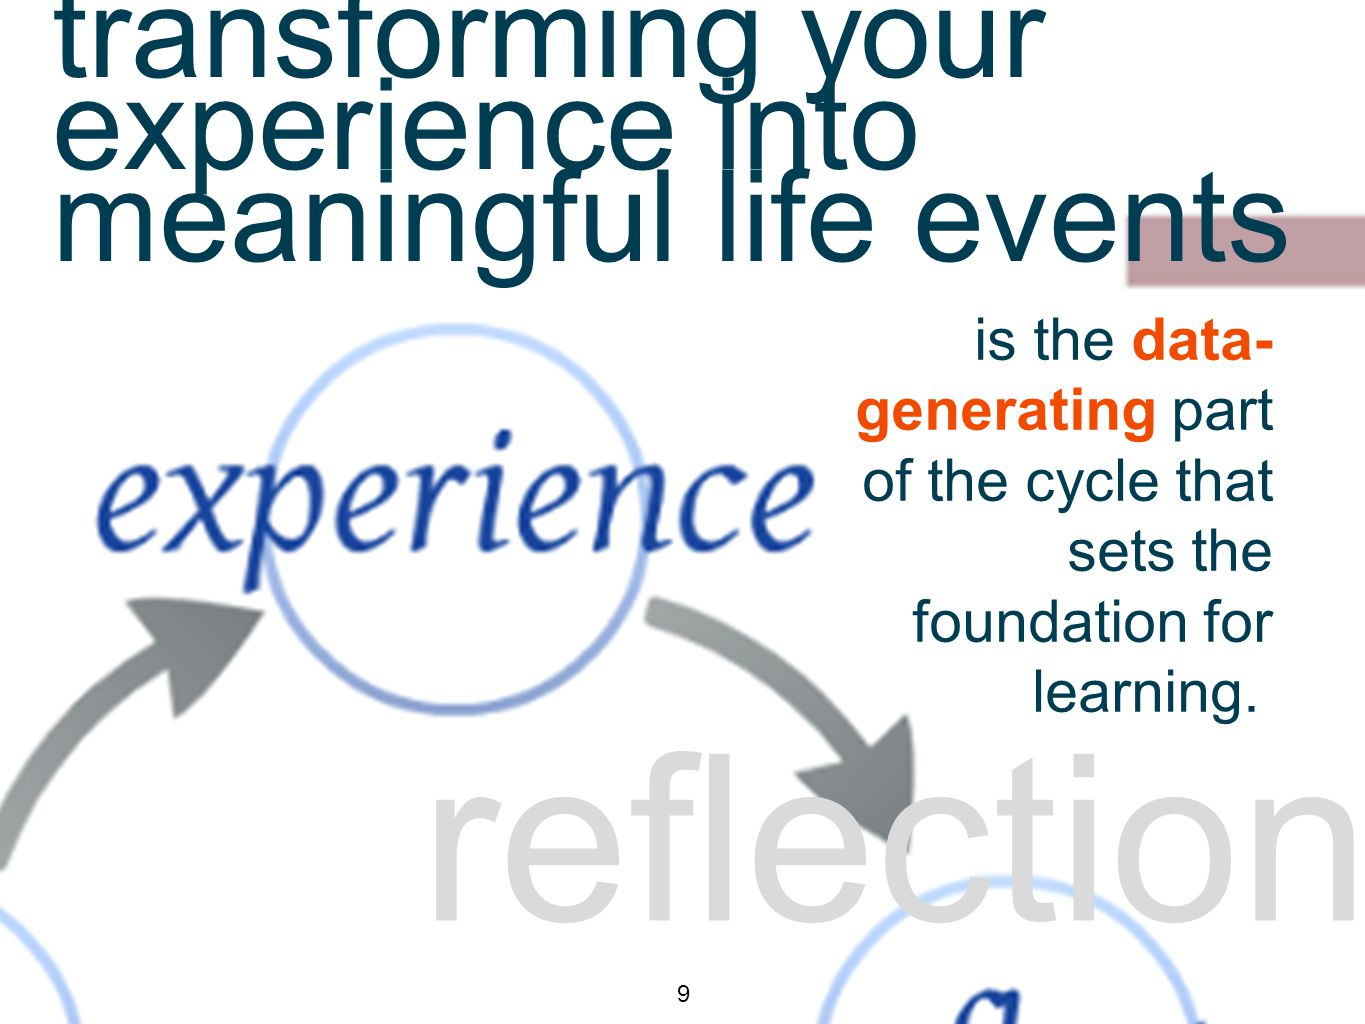 reflection 9 transforming your experience into meaningful life events is the data- generating part of the cycle that sets the foundation for learning.